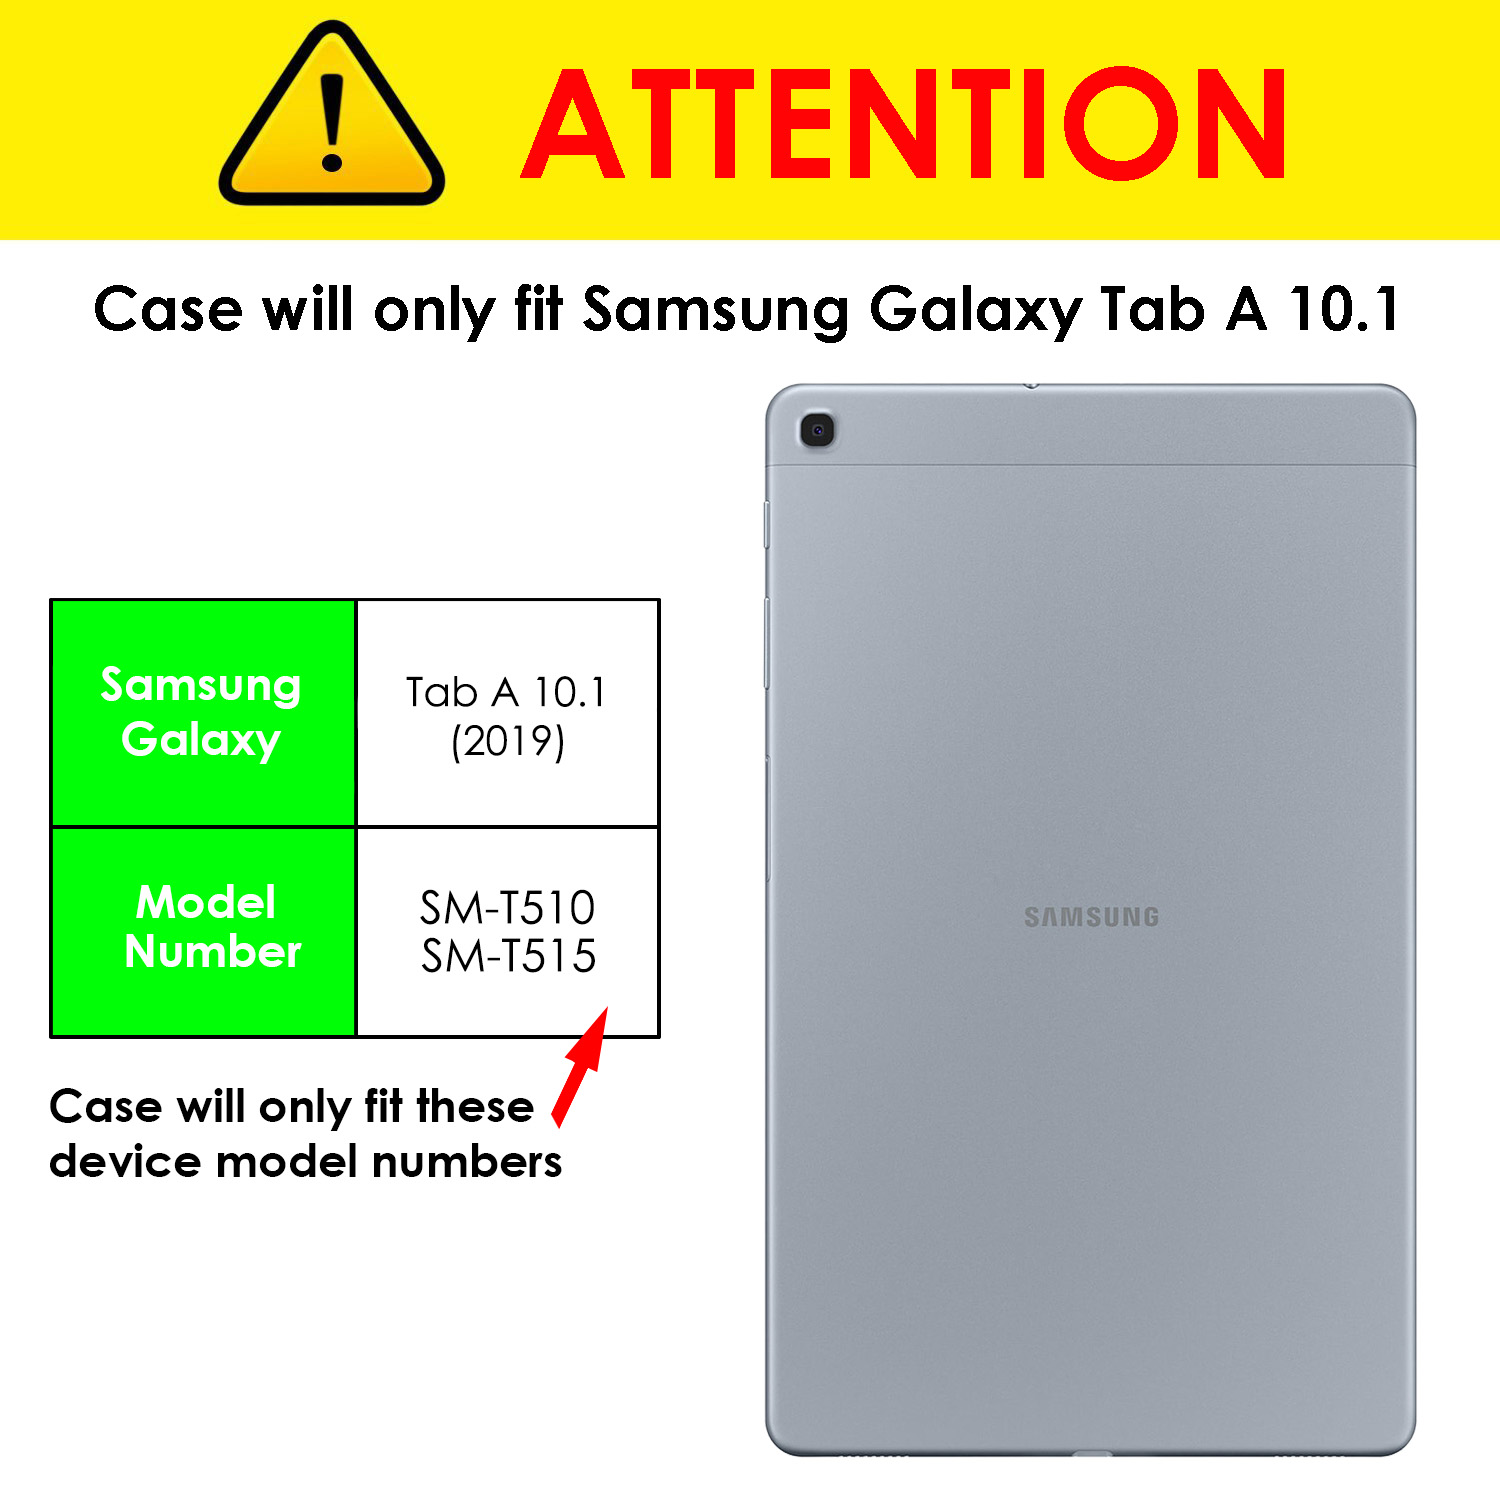 miniature 92 - Samsung Galaxy Tab A 10.1 2019 Étui Magnétique Protection & Support + Stylet